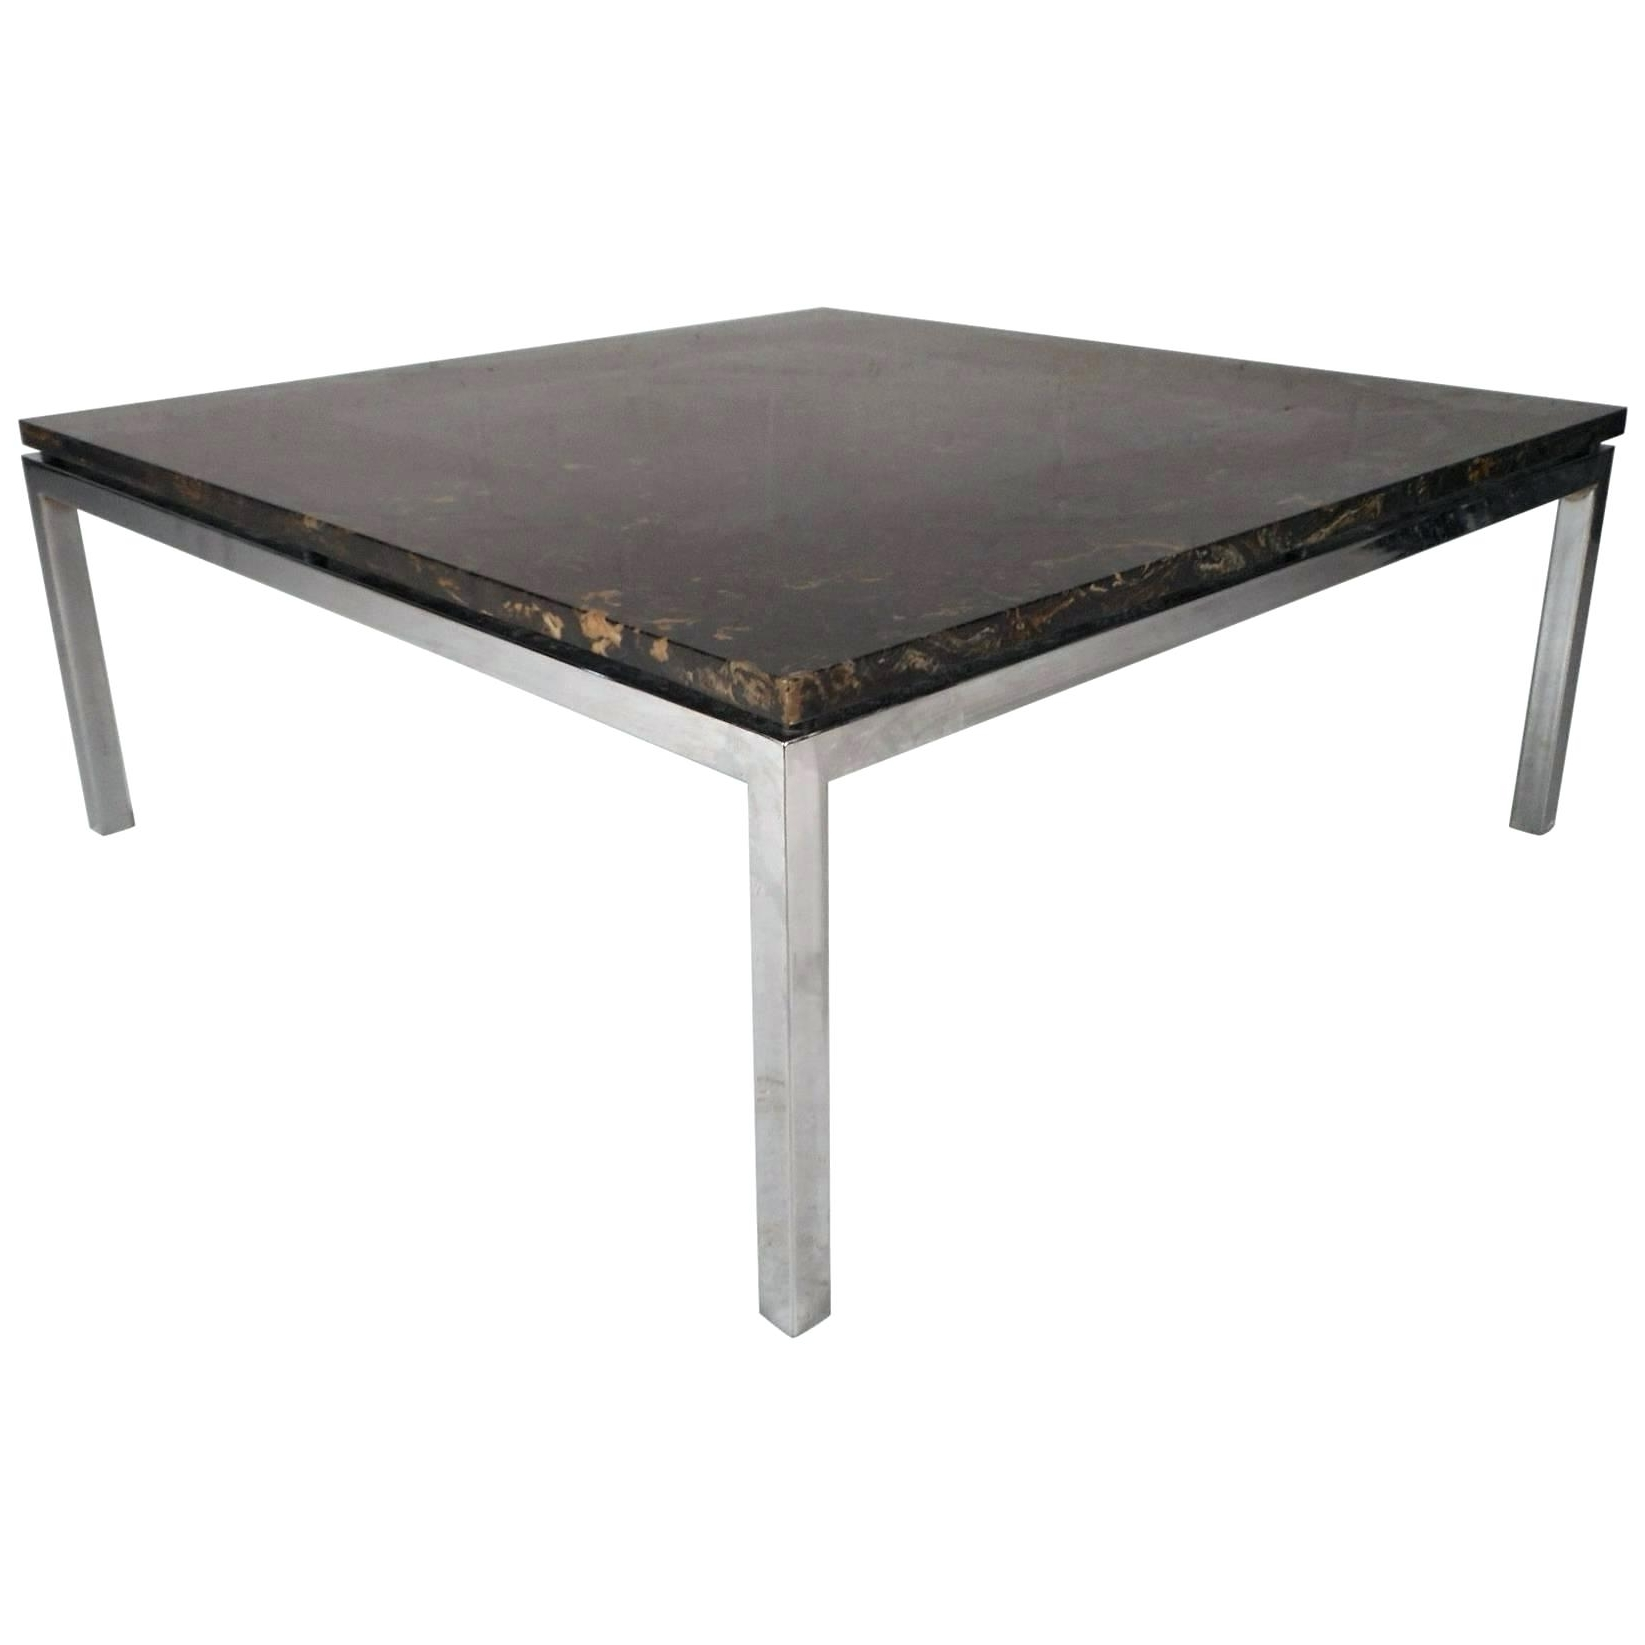 Living Round Mid Century Modern Marble Coffee Table Glass Top In Most Recently Released Mid Century Modern Marble Coffee Tables (View 6 of 20)